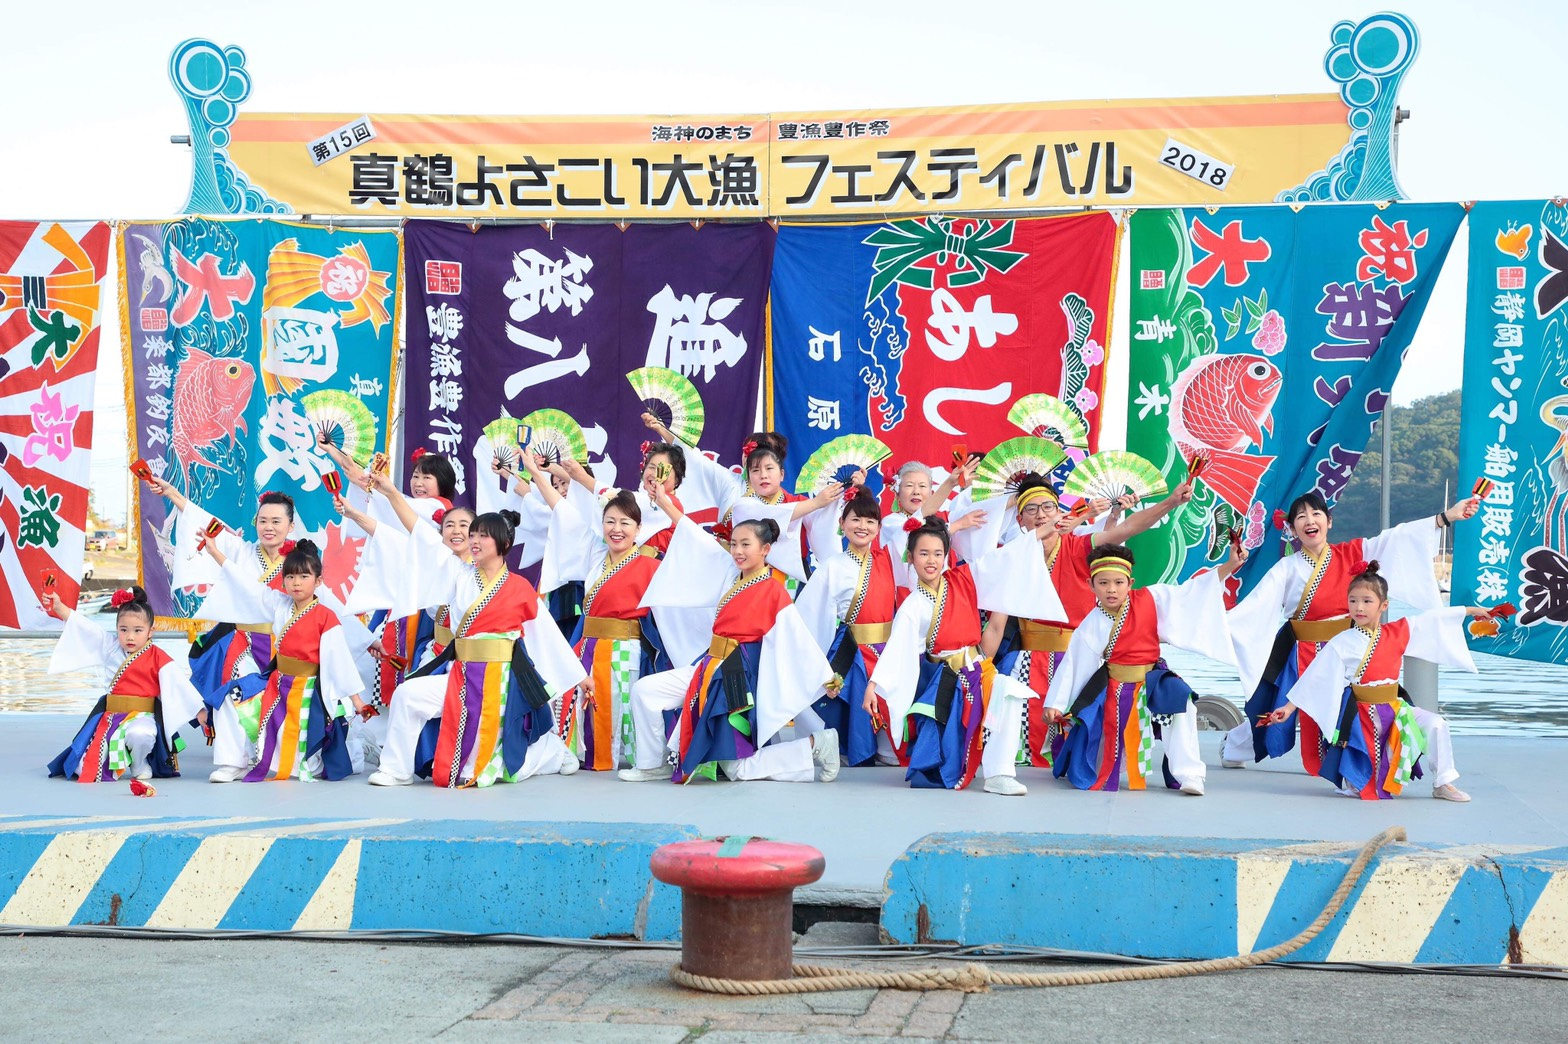 [Manazuru Town] The 16th Manazuru Yosakoi Great Fishing Festival 2019